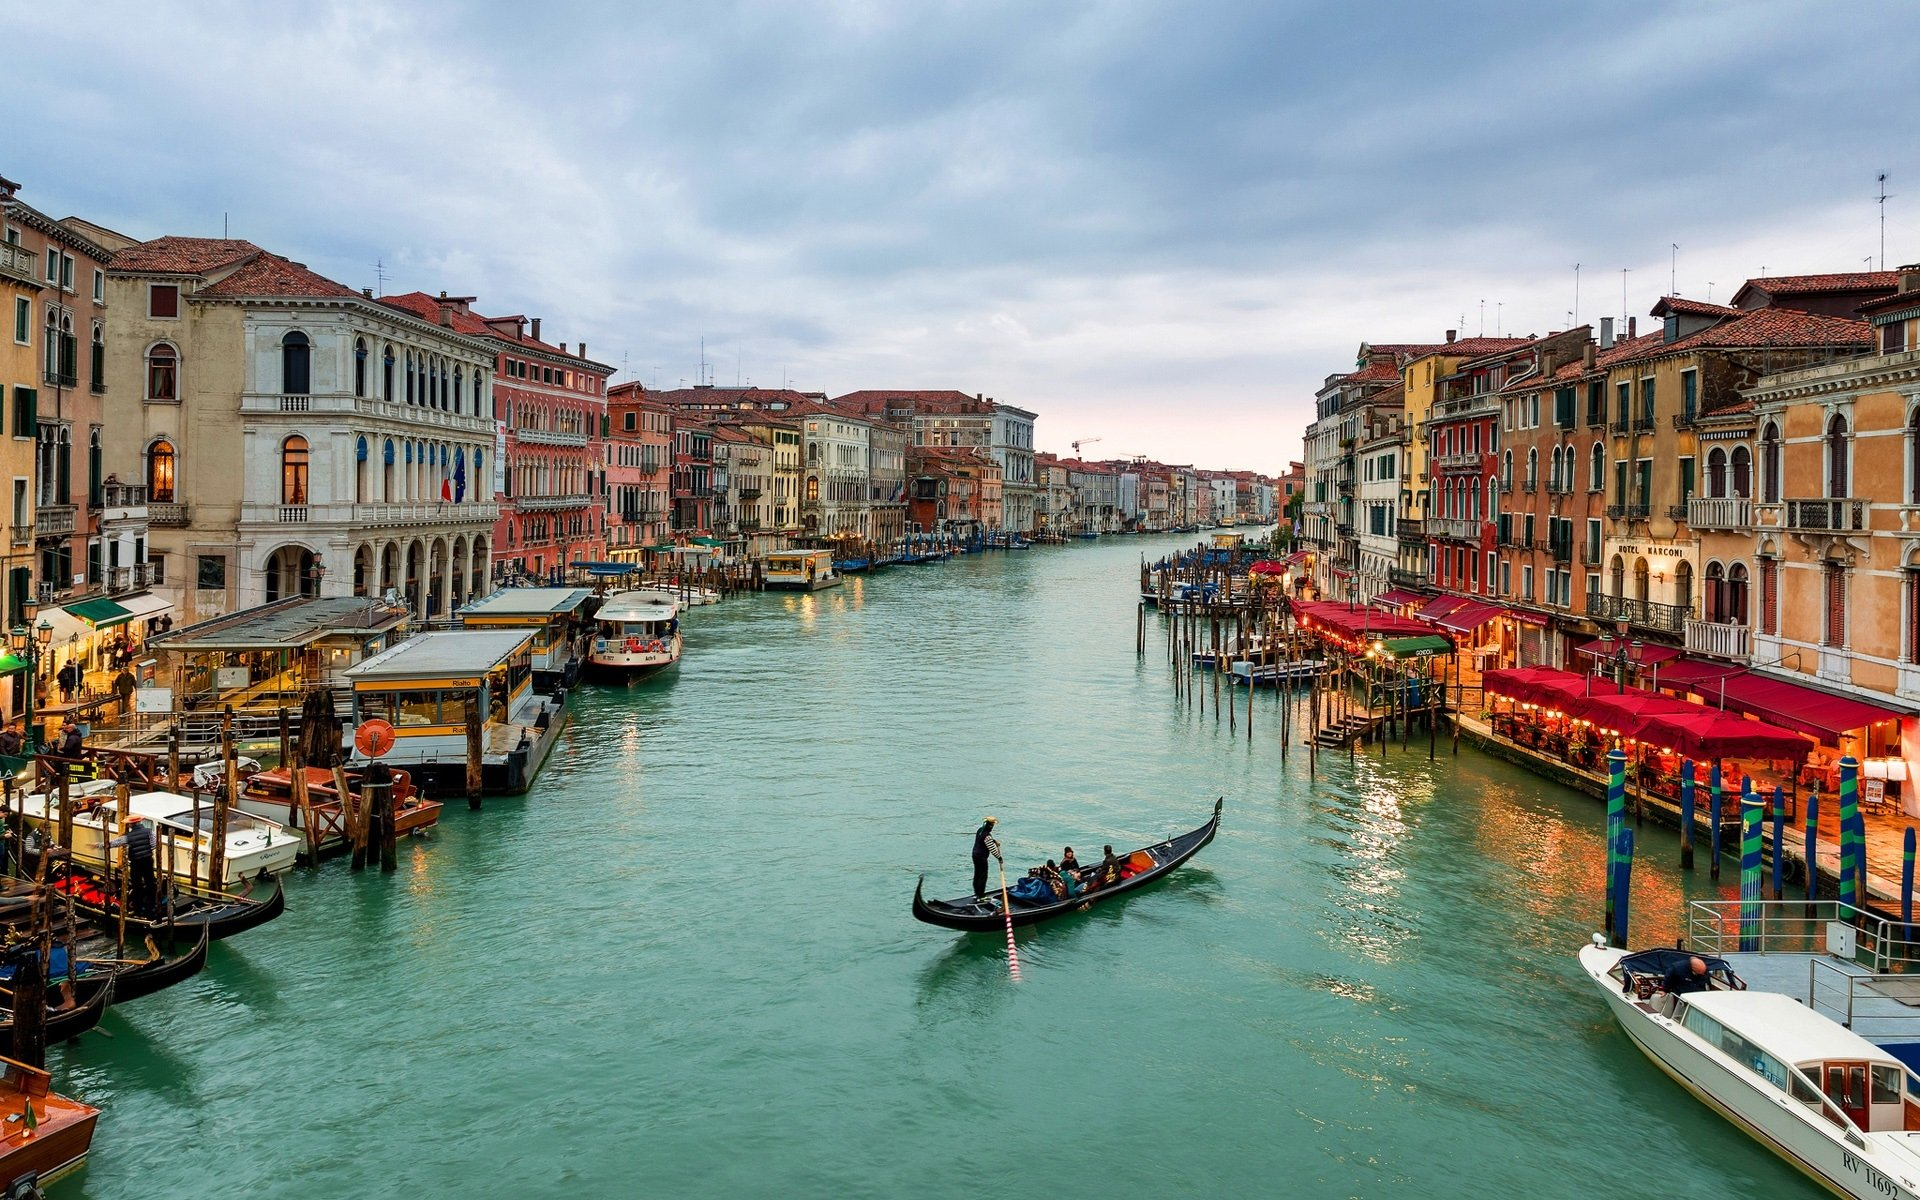 Grand Canal in Venice Italy HD Wallpaper Background Image 1920x1200